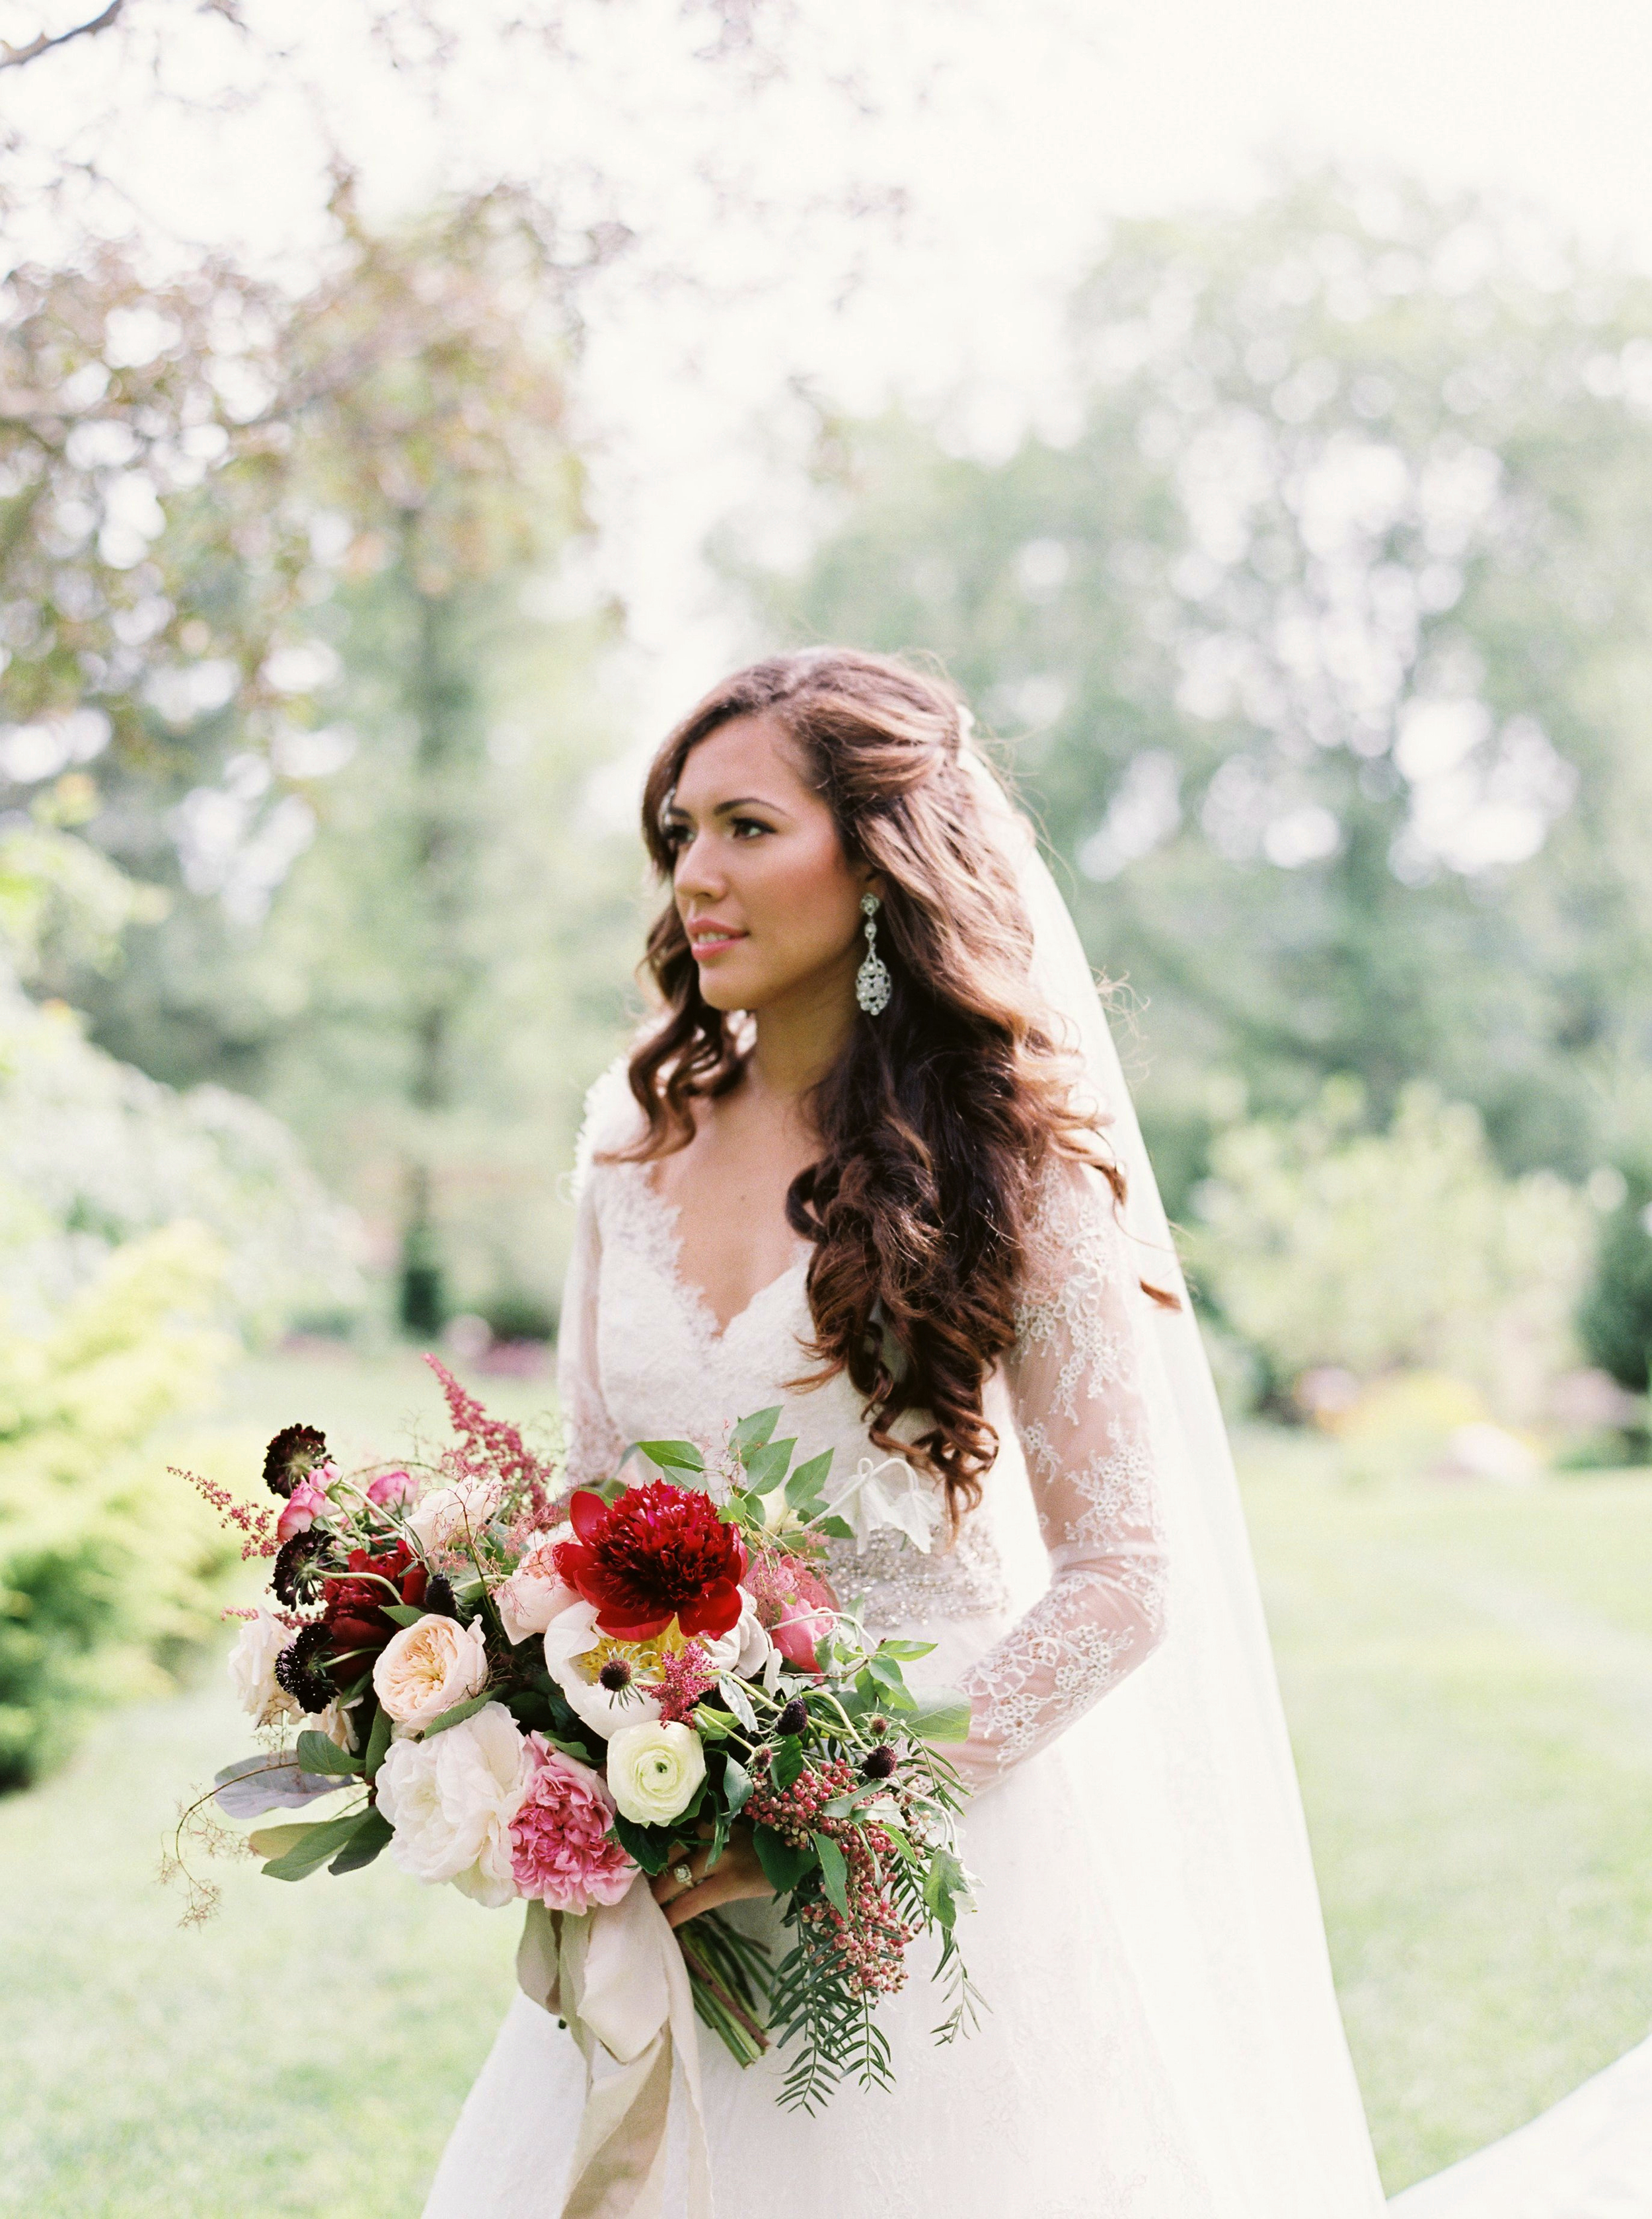 Lauren Balingit Film Wedding Photography -03-3.jpg